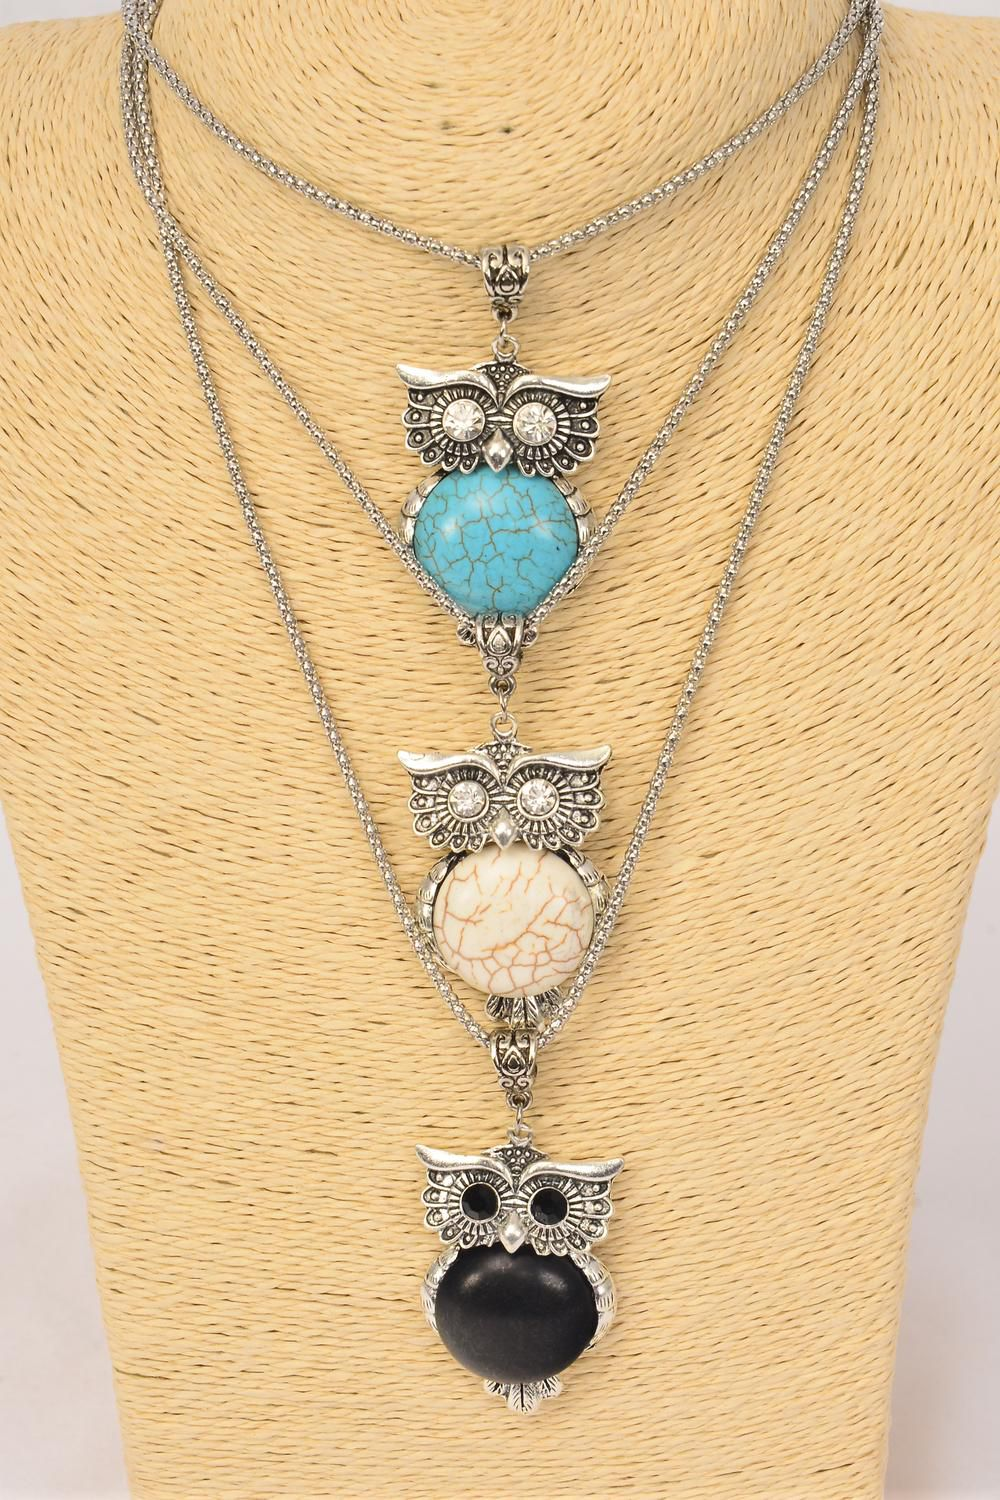 "Necklace Silver Chain Owl Semiprecious Stone/DZ Pendant-1.75"" x 1.25"" Wide,Chain-18"" Extension Chain,4 Ivory,4 Black,4 Turquoise Asst,Hang Tag & OPP Bag & UPC Code"